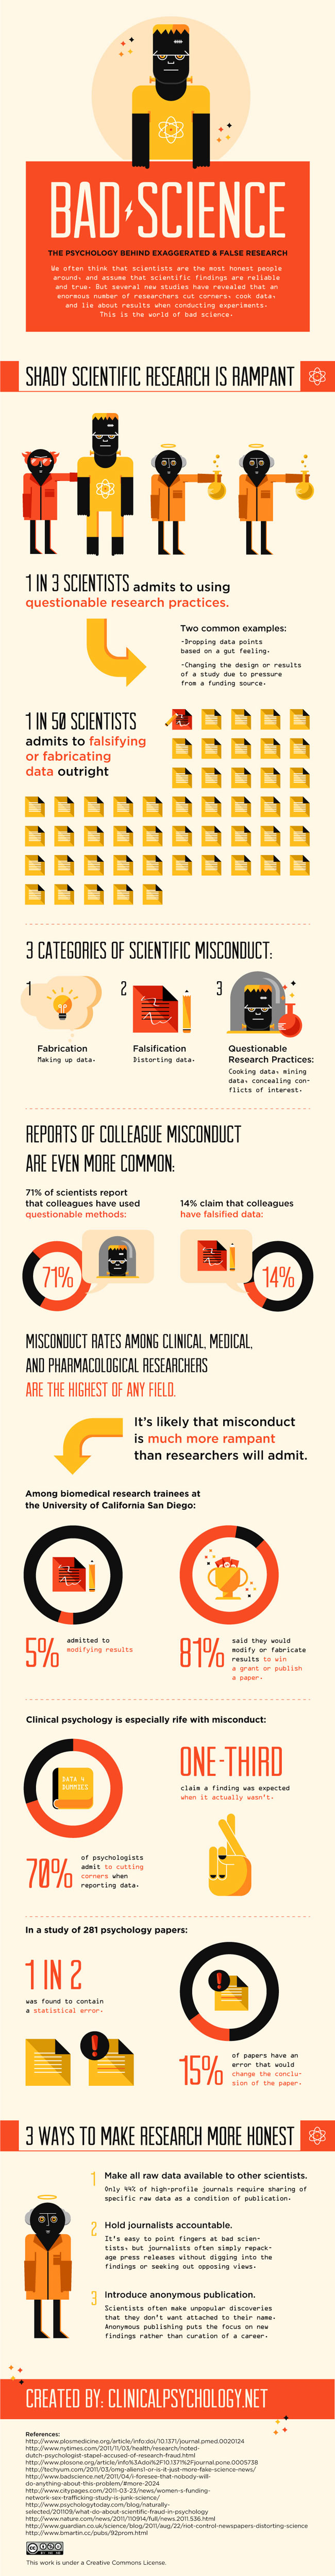 falsified-research-infographic2.jpg